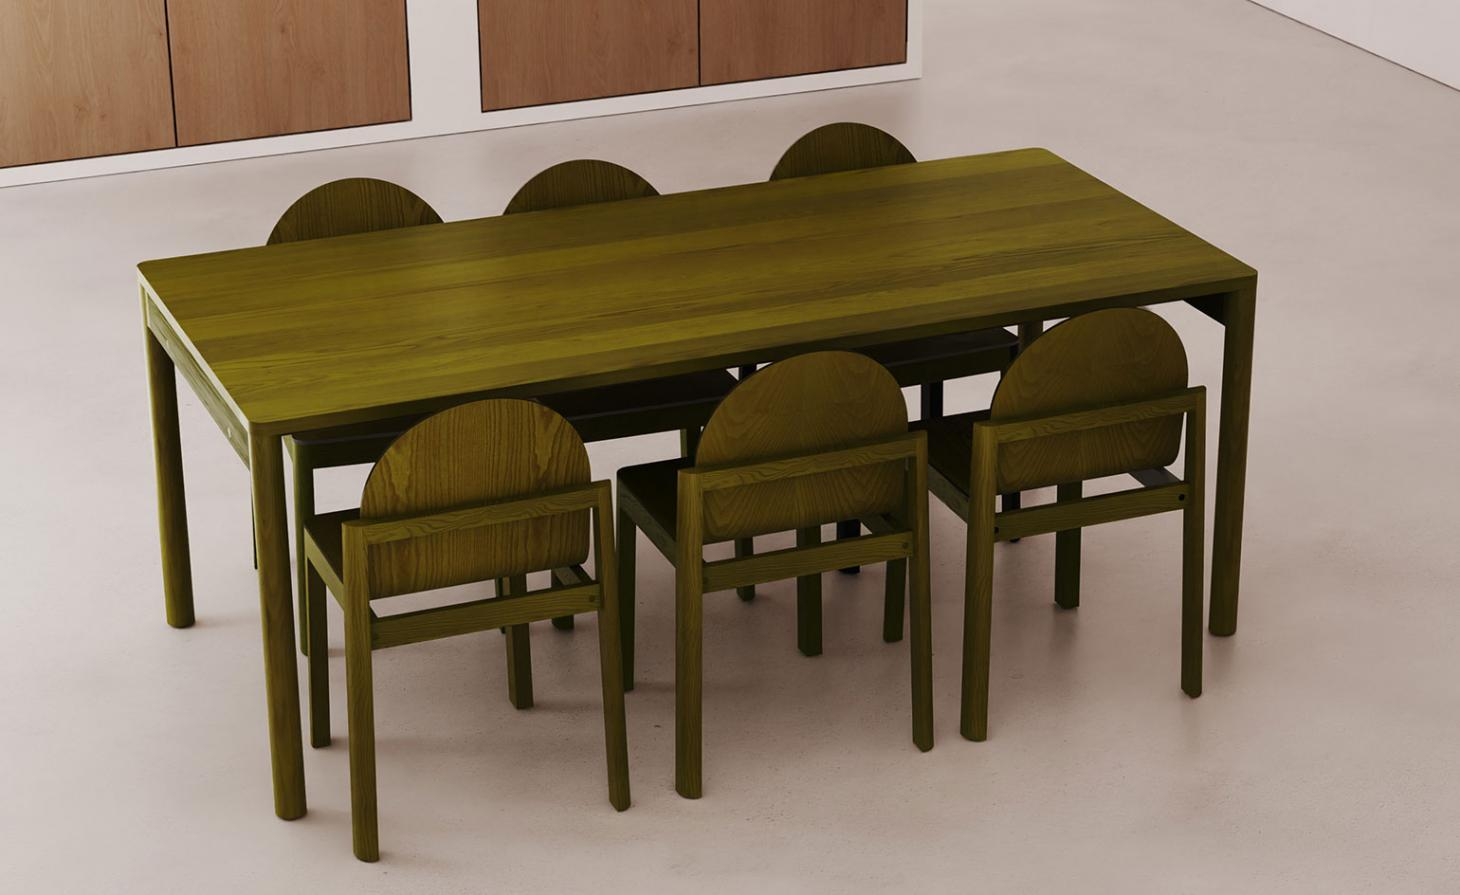 Olive green wooden table with six chairs by Dims